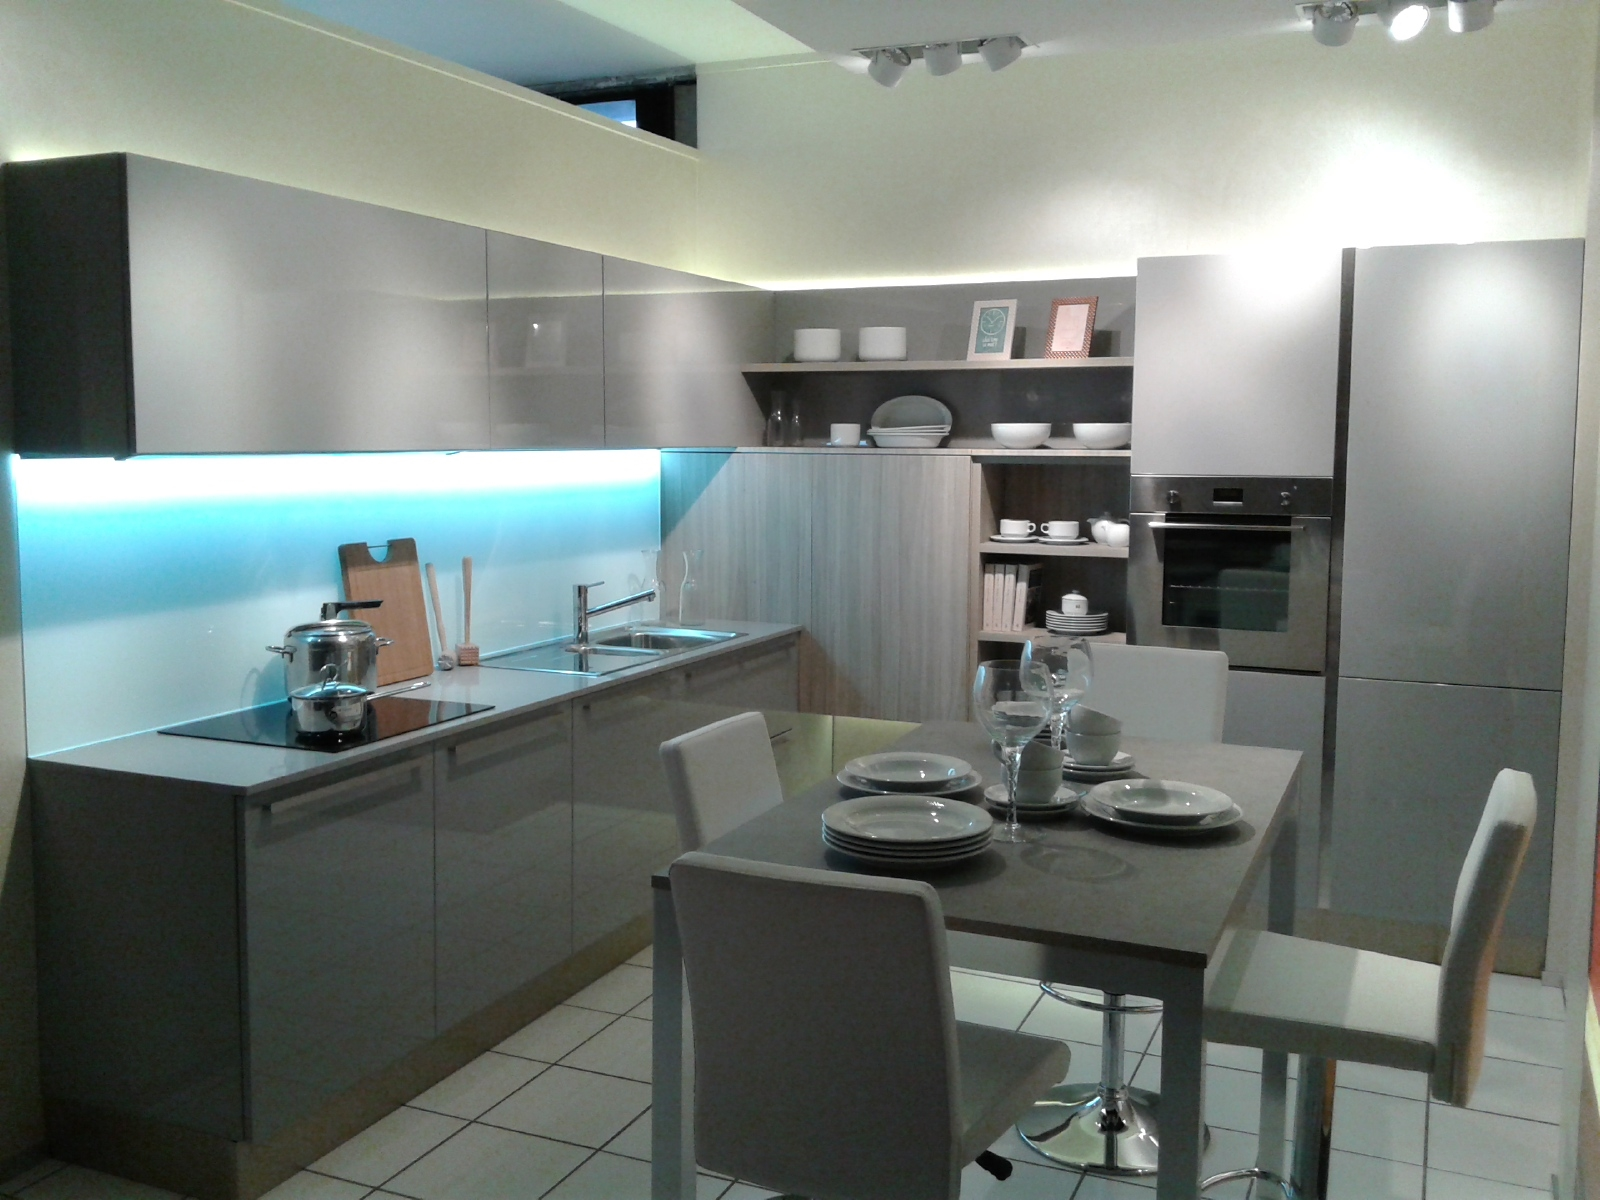 Veneta Cucine Catania. Simple Veneta Cucine Store With Veneta ...